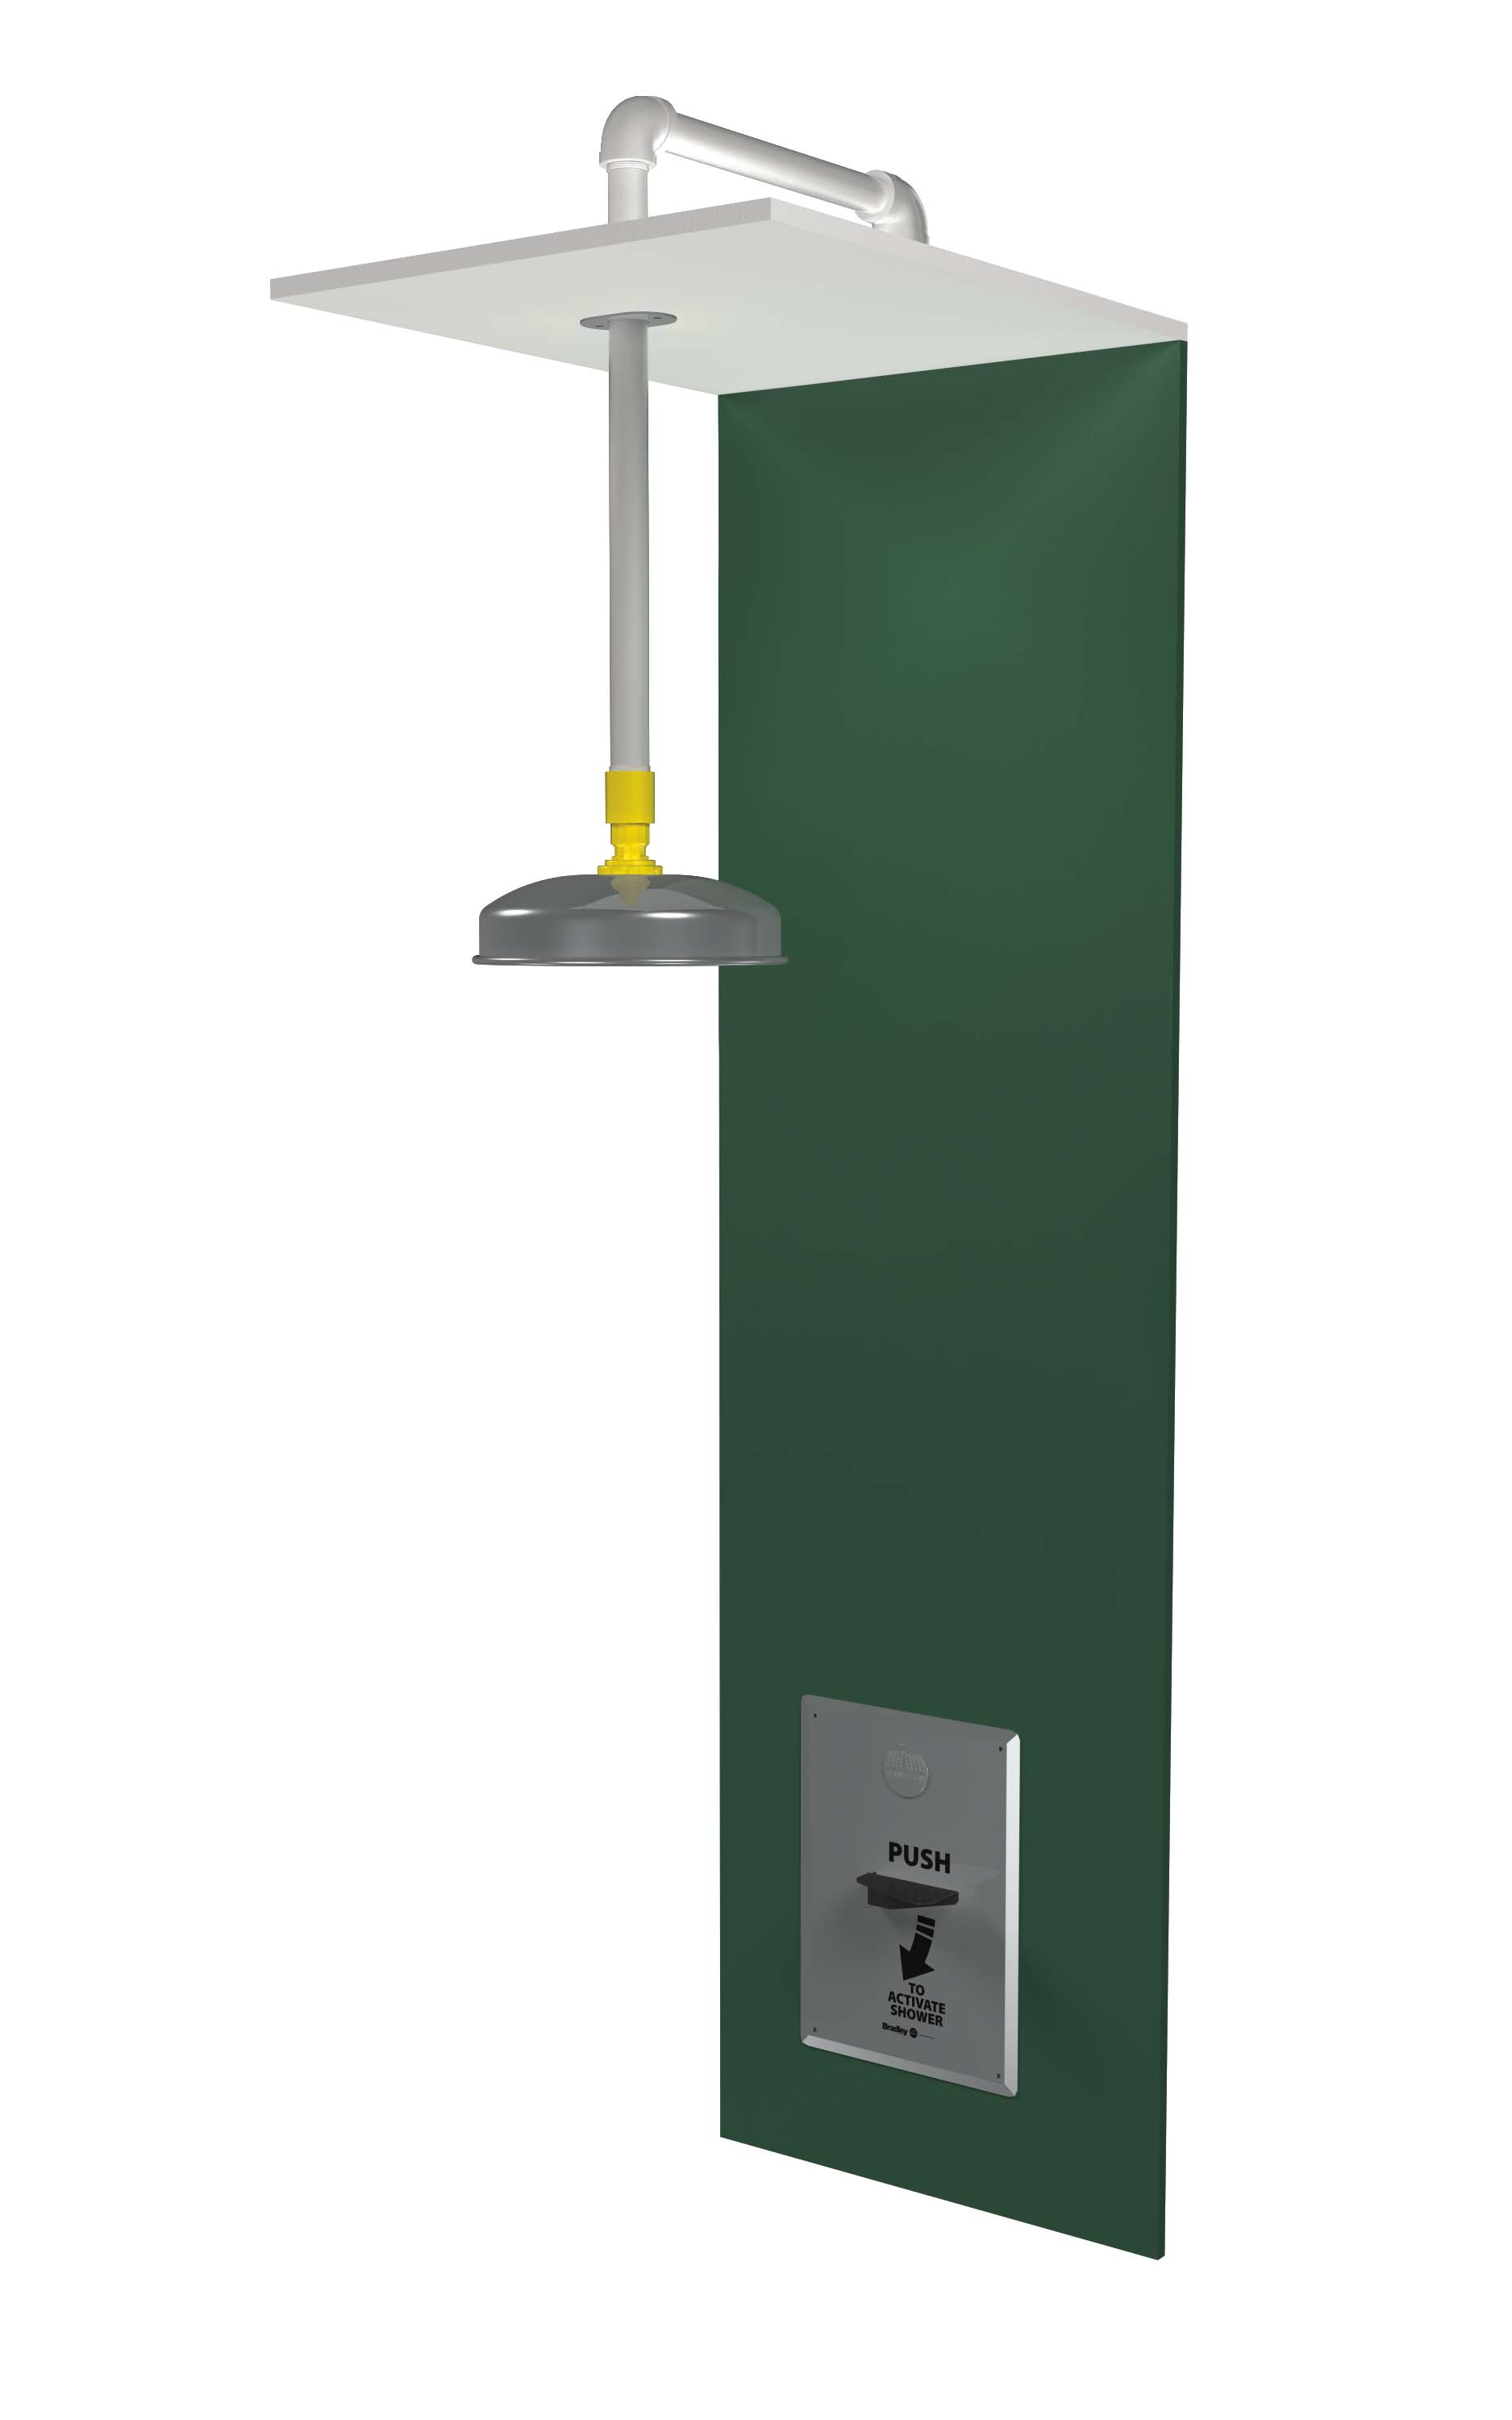 Bradley S19 125sbf Barrier Free Recessed Drench Shower With